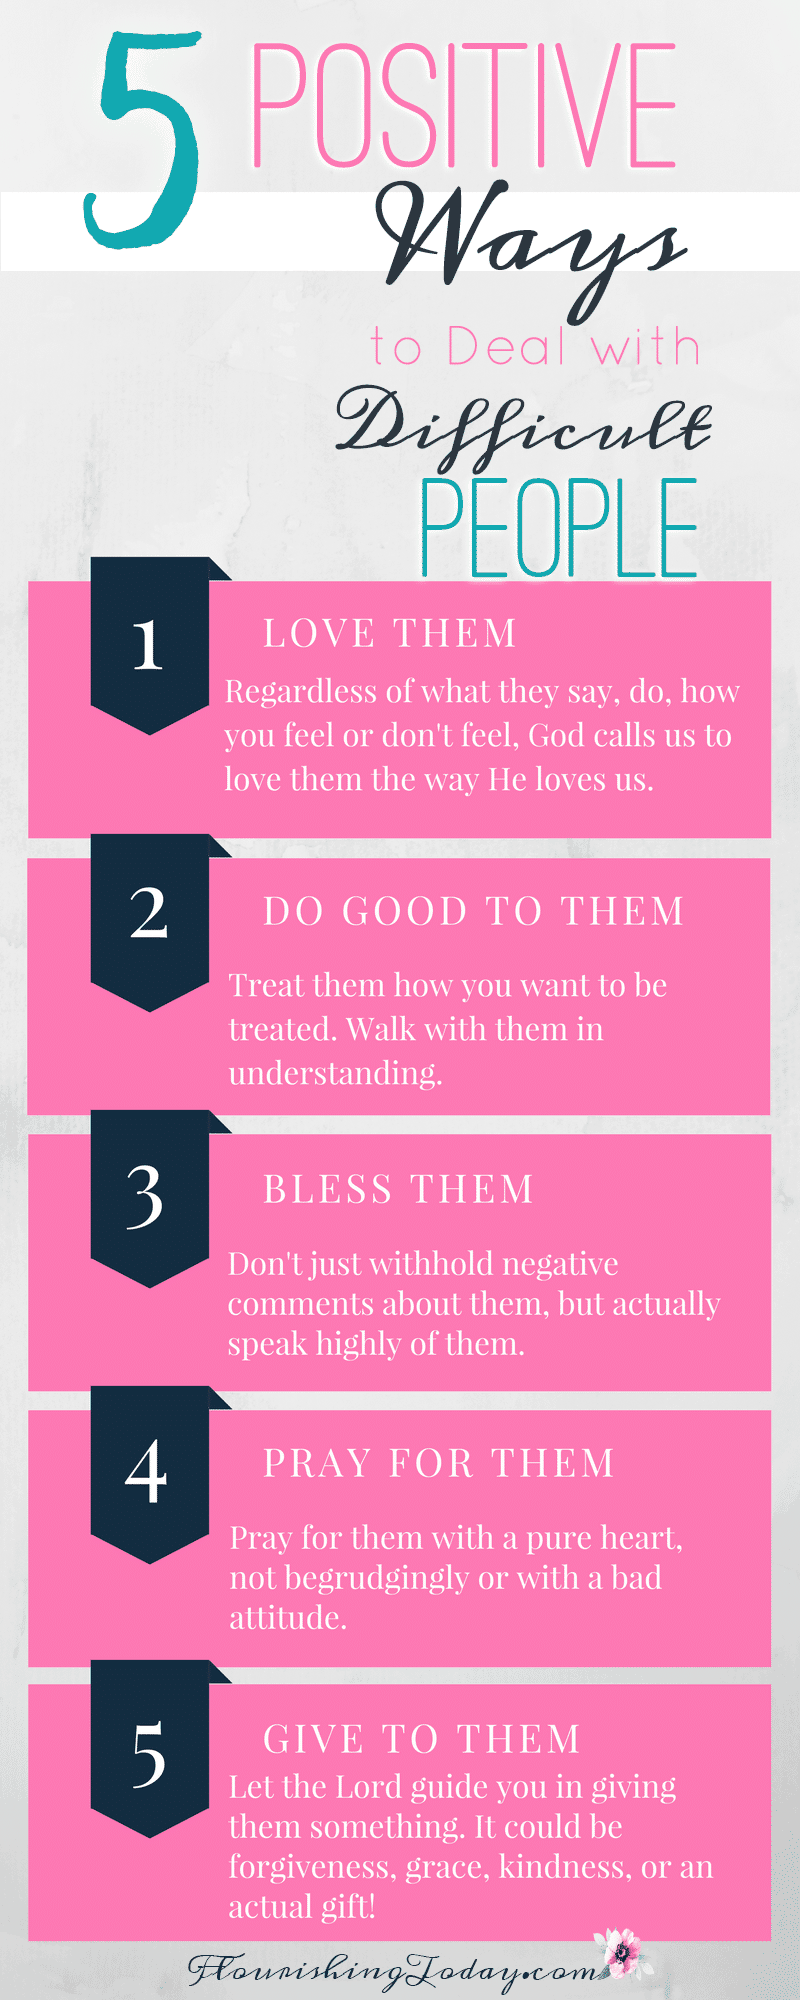 Dealing with difficult people is a part of life. How can we handle them with care? Here are some keys on how to deal with difficult people.